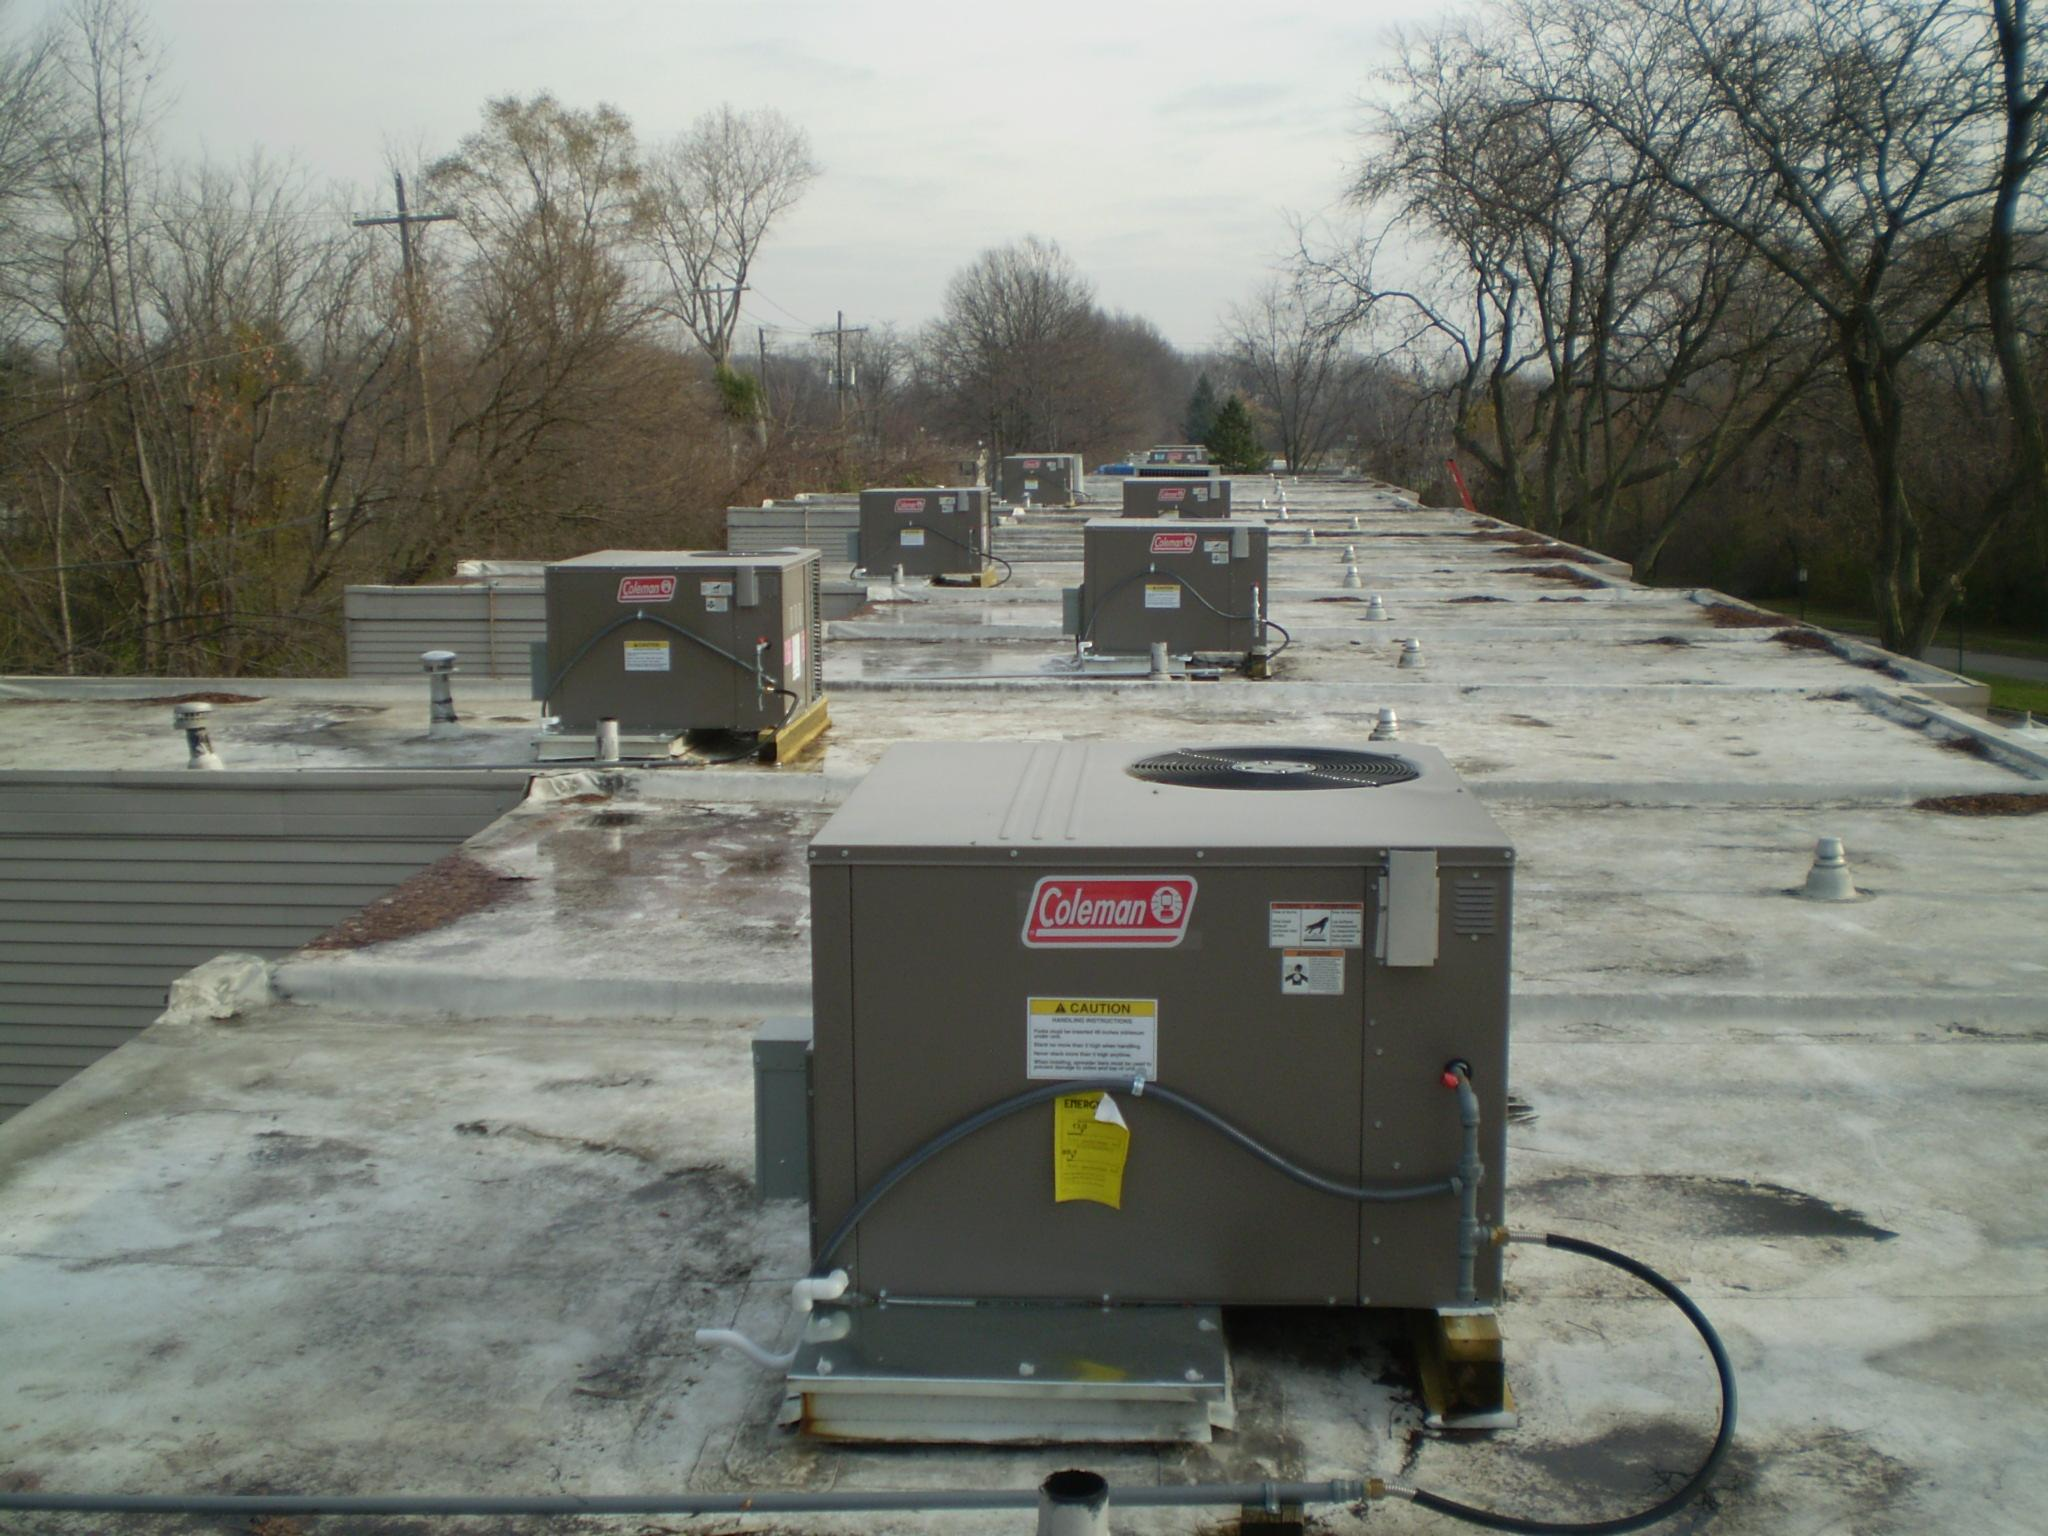 Alltemp Heating And Cooling Co. Inc.